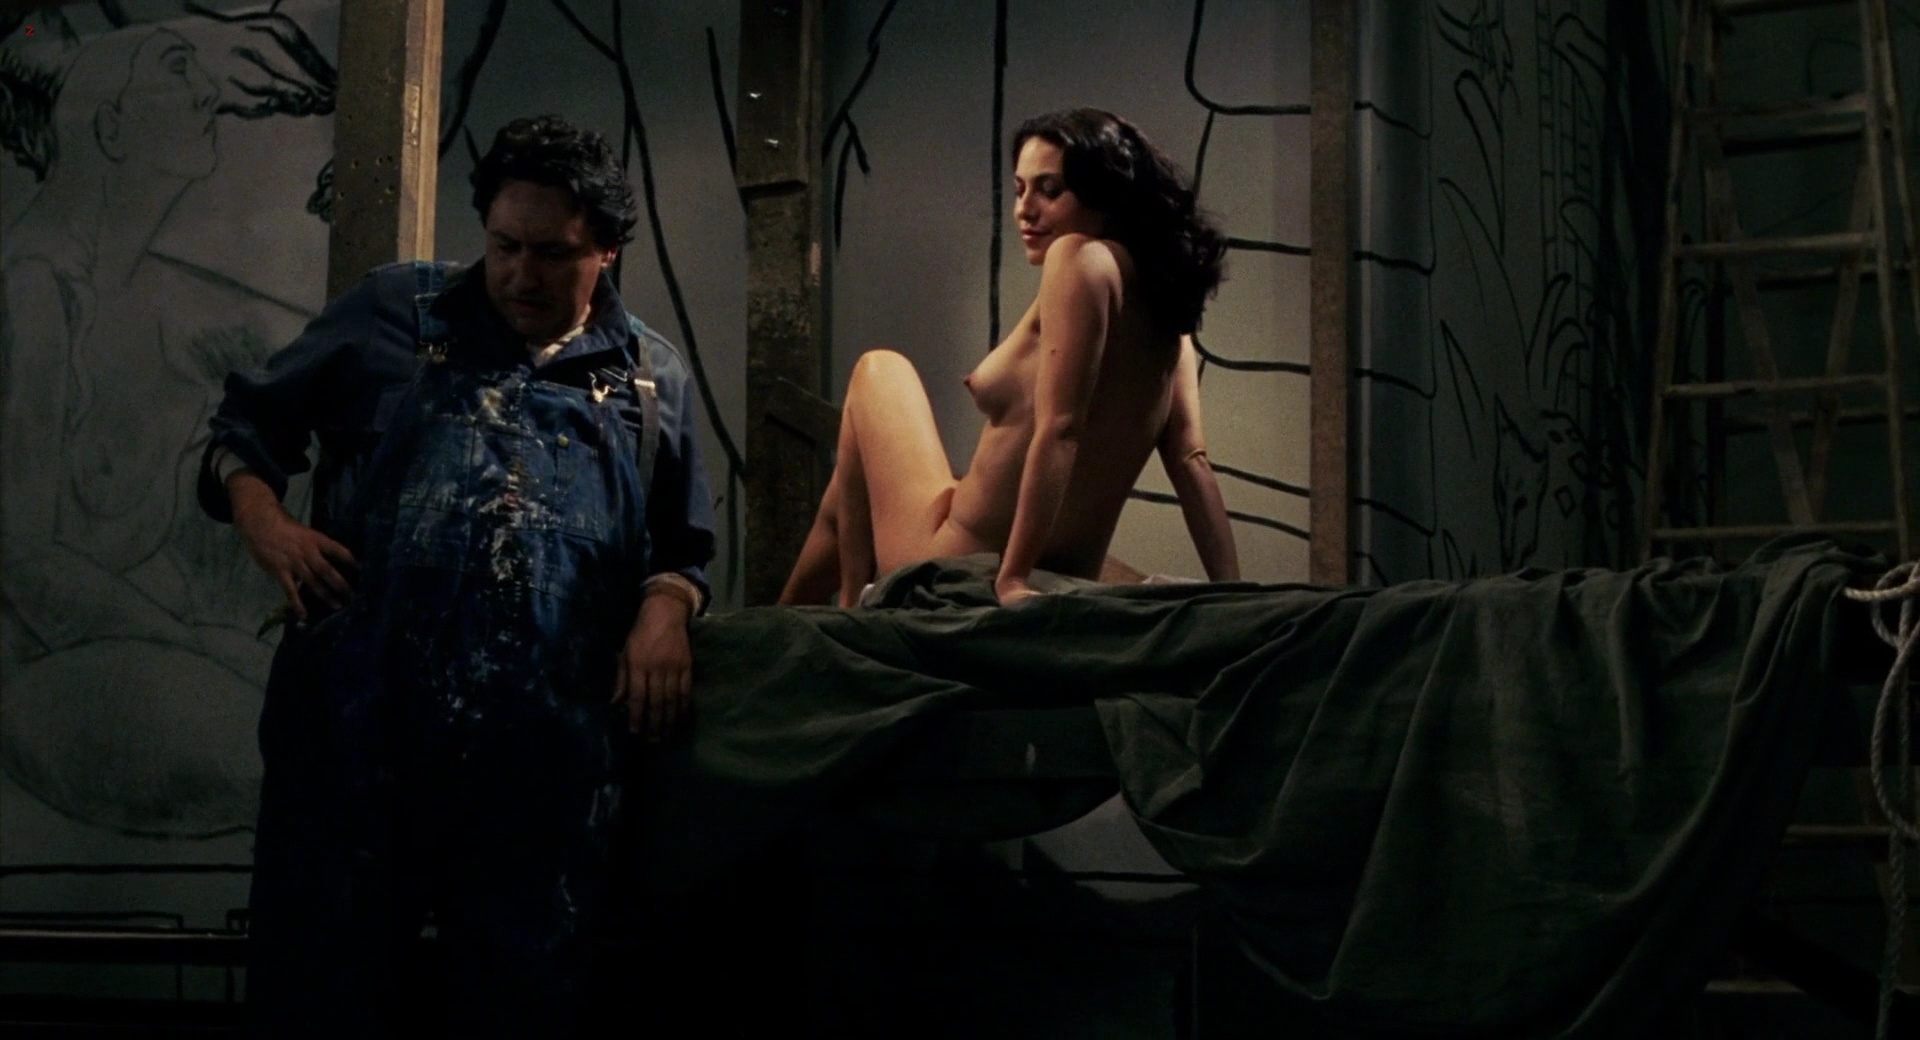 Mia maestro kept and dreamless kept and dreamless beautiful celebrity sexy nude scene